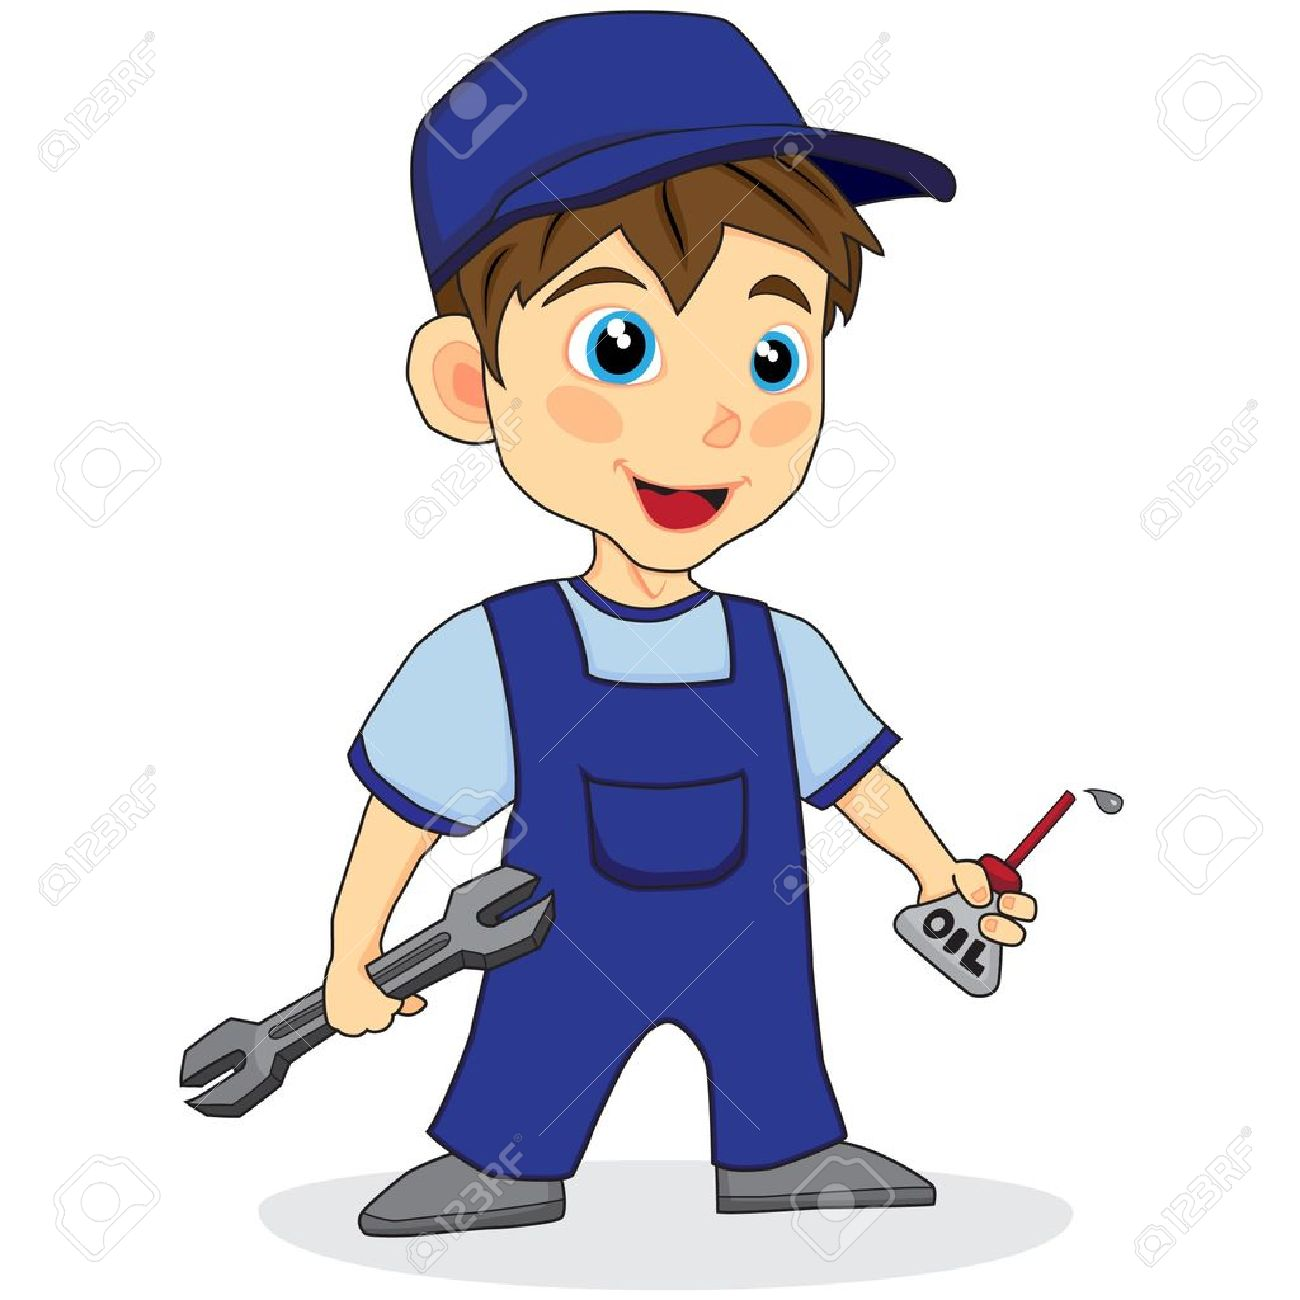 Cute Mechanic Boy Royalty Free Cliparts, Vectors, And Stock.